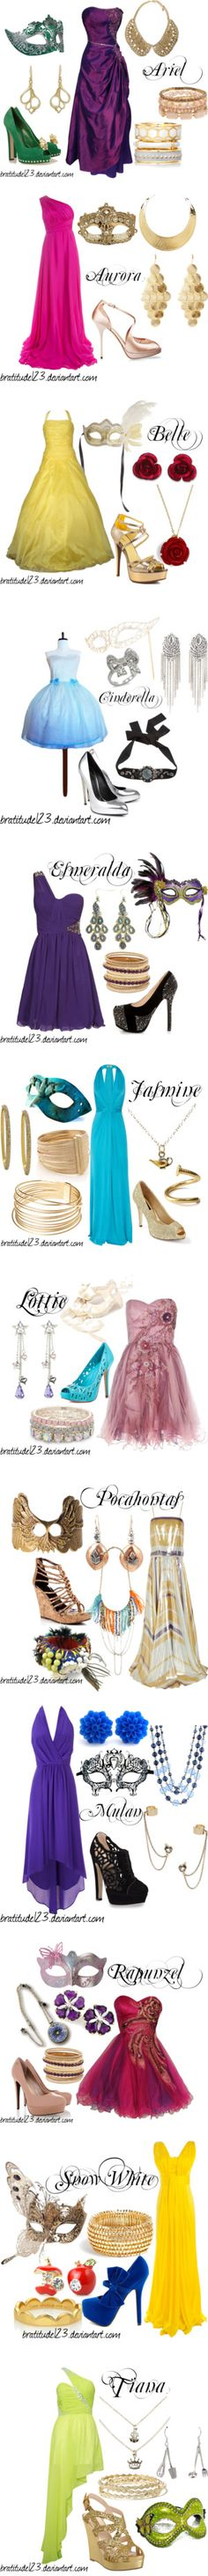 """Disney Girls Masquerade"" by djerap ❤ liked on Polyvore"